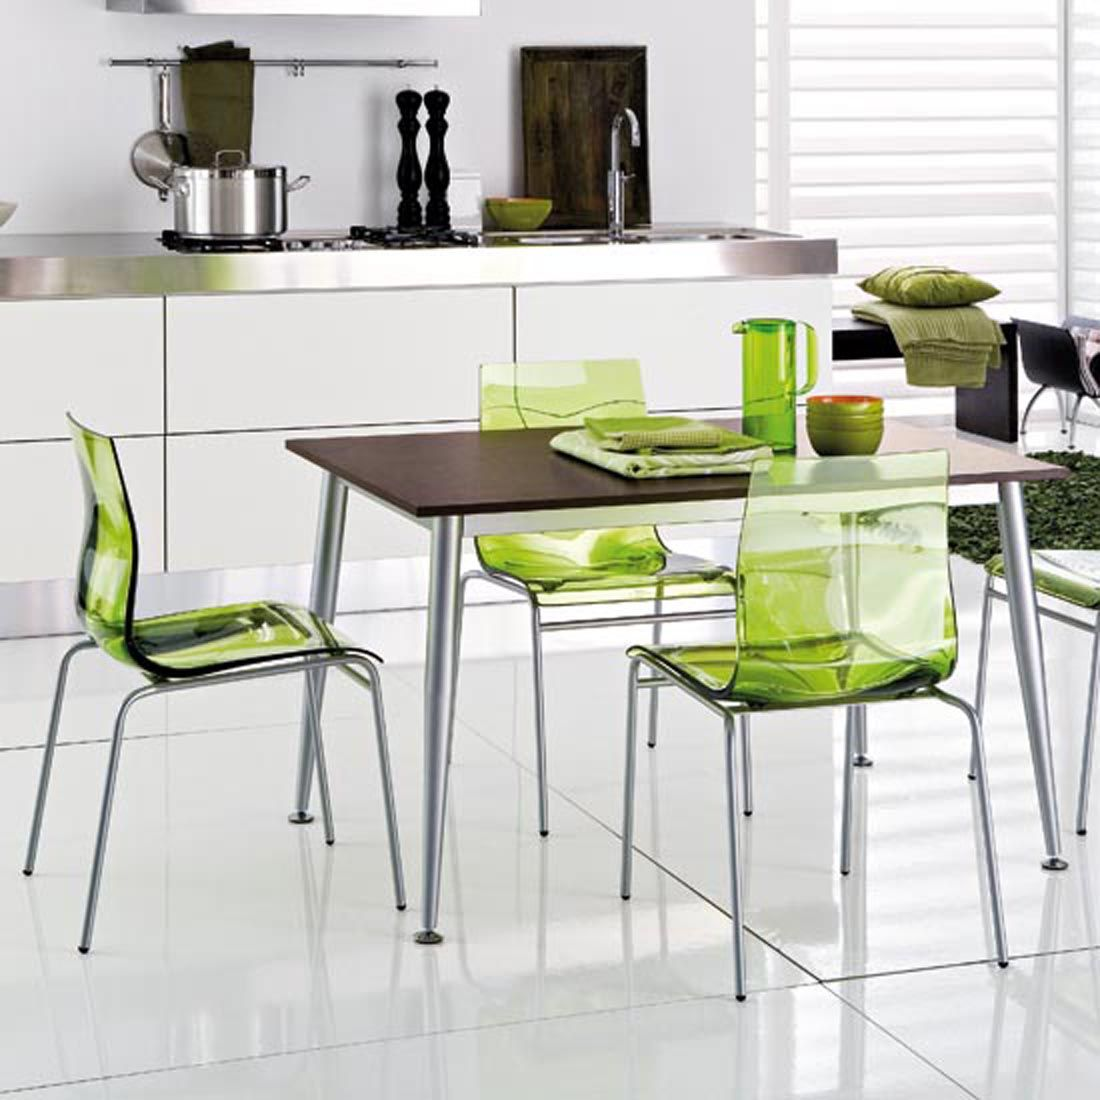 Trends Kitchen Table And Chairs #9938 | Design | Pinterest ...